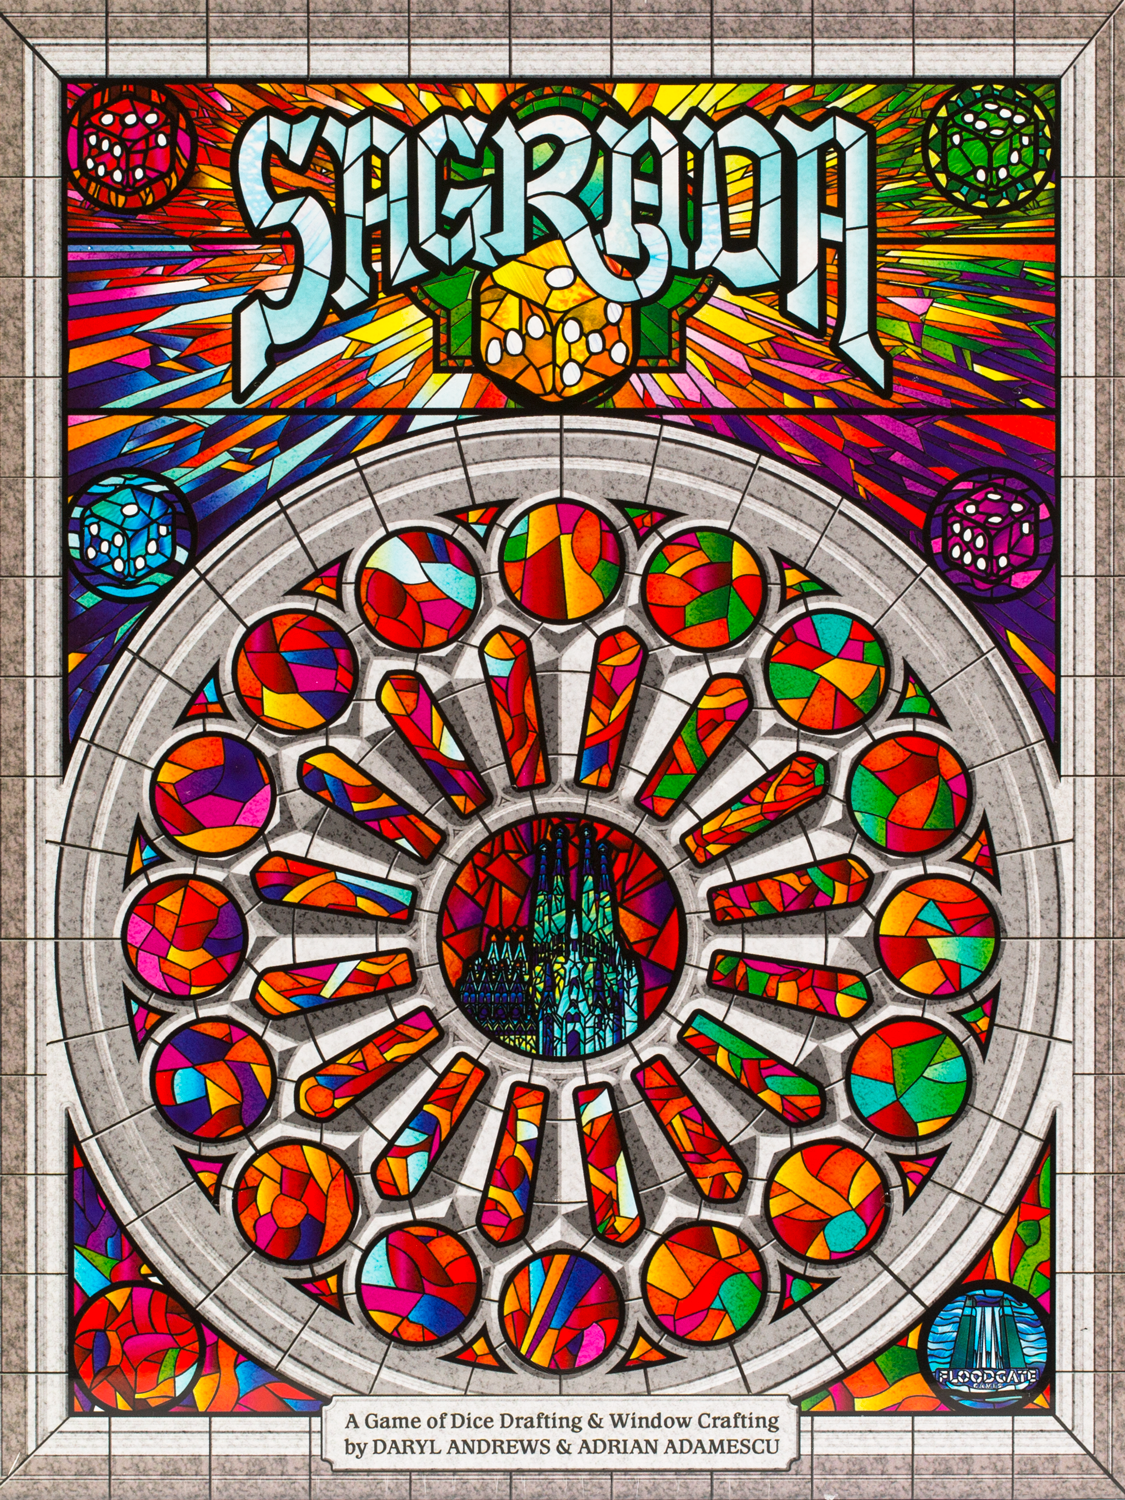 Sagrada-01-buy-dice-game-from-out-of-town-games